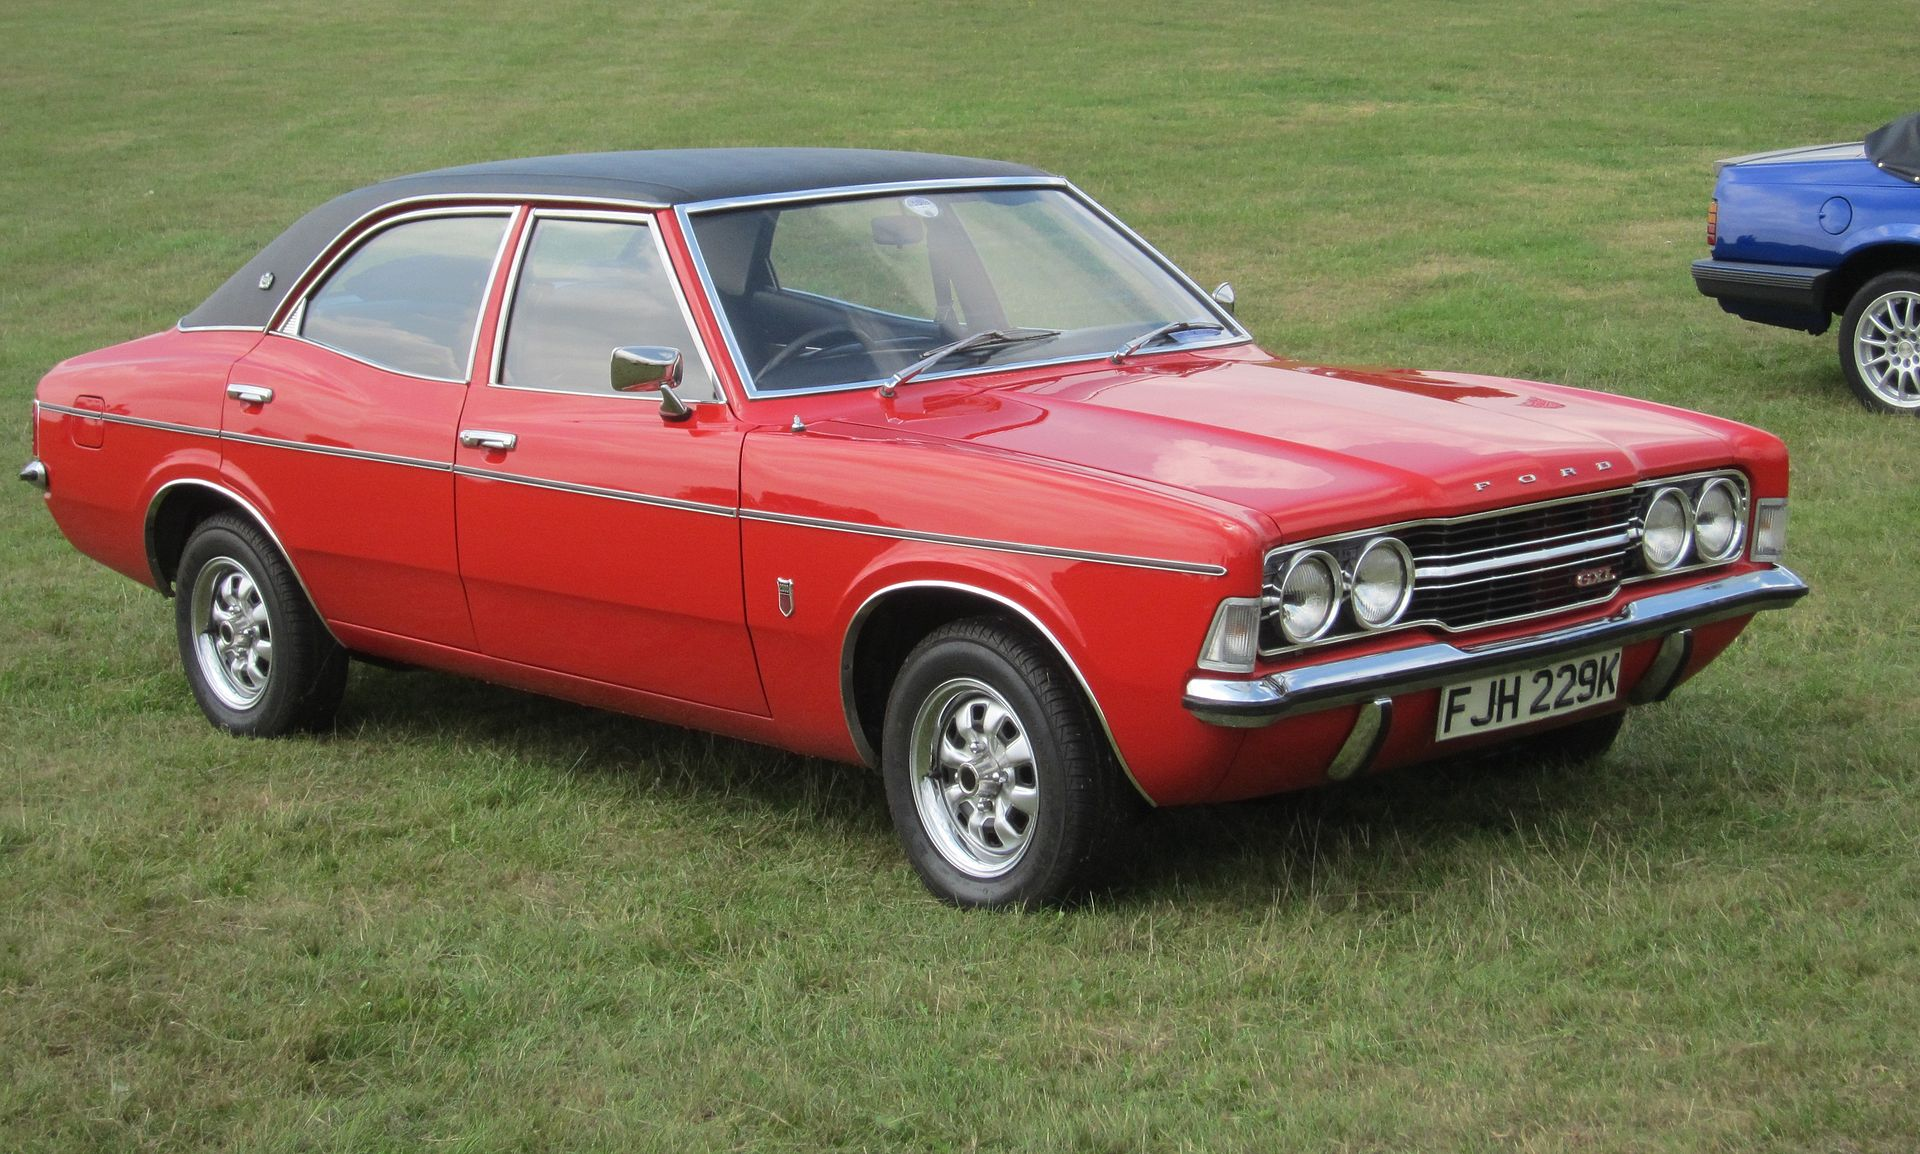 Ford Cortina Mkiii Gxl Ca Cc on Ford Cortina 1970 1976 Mk3